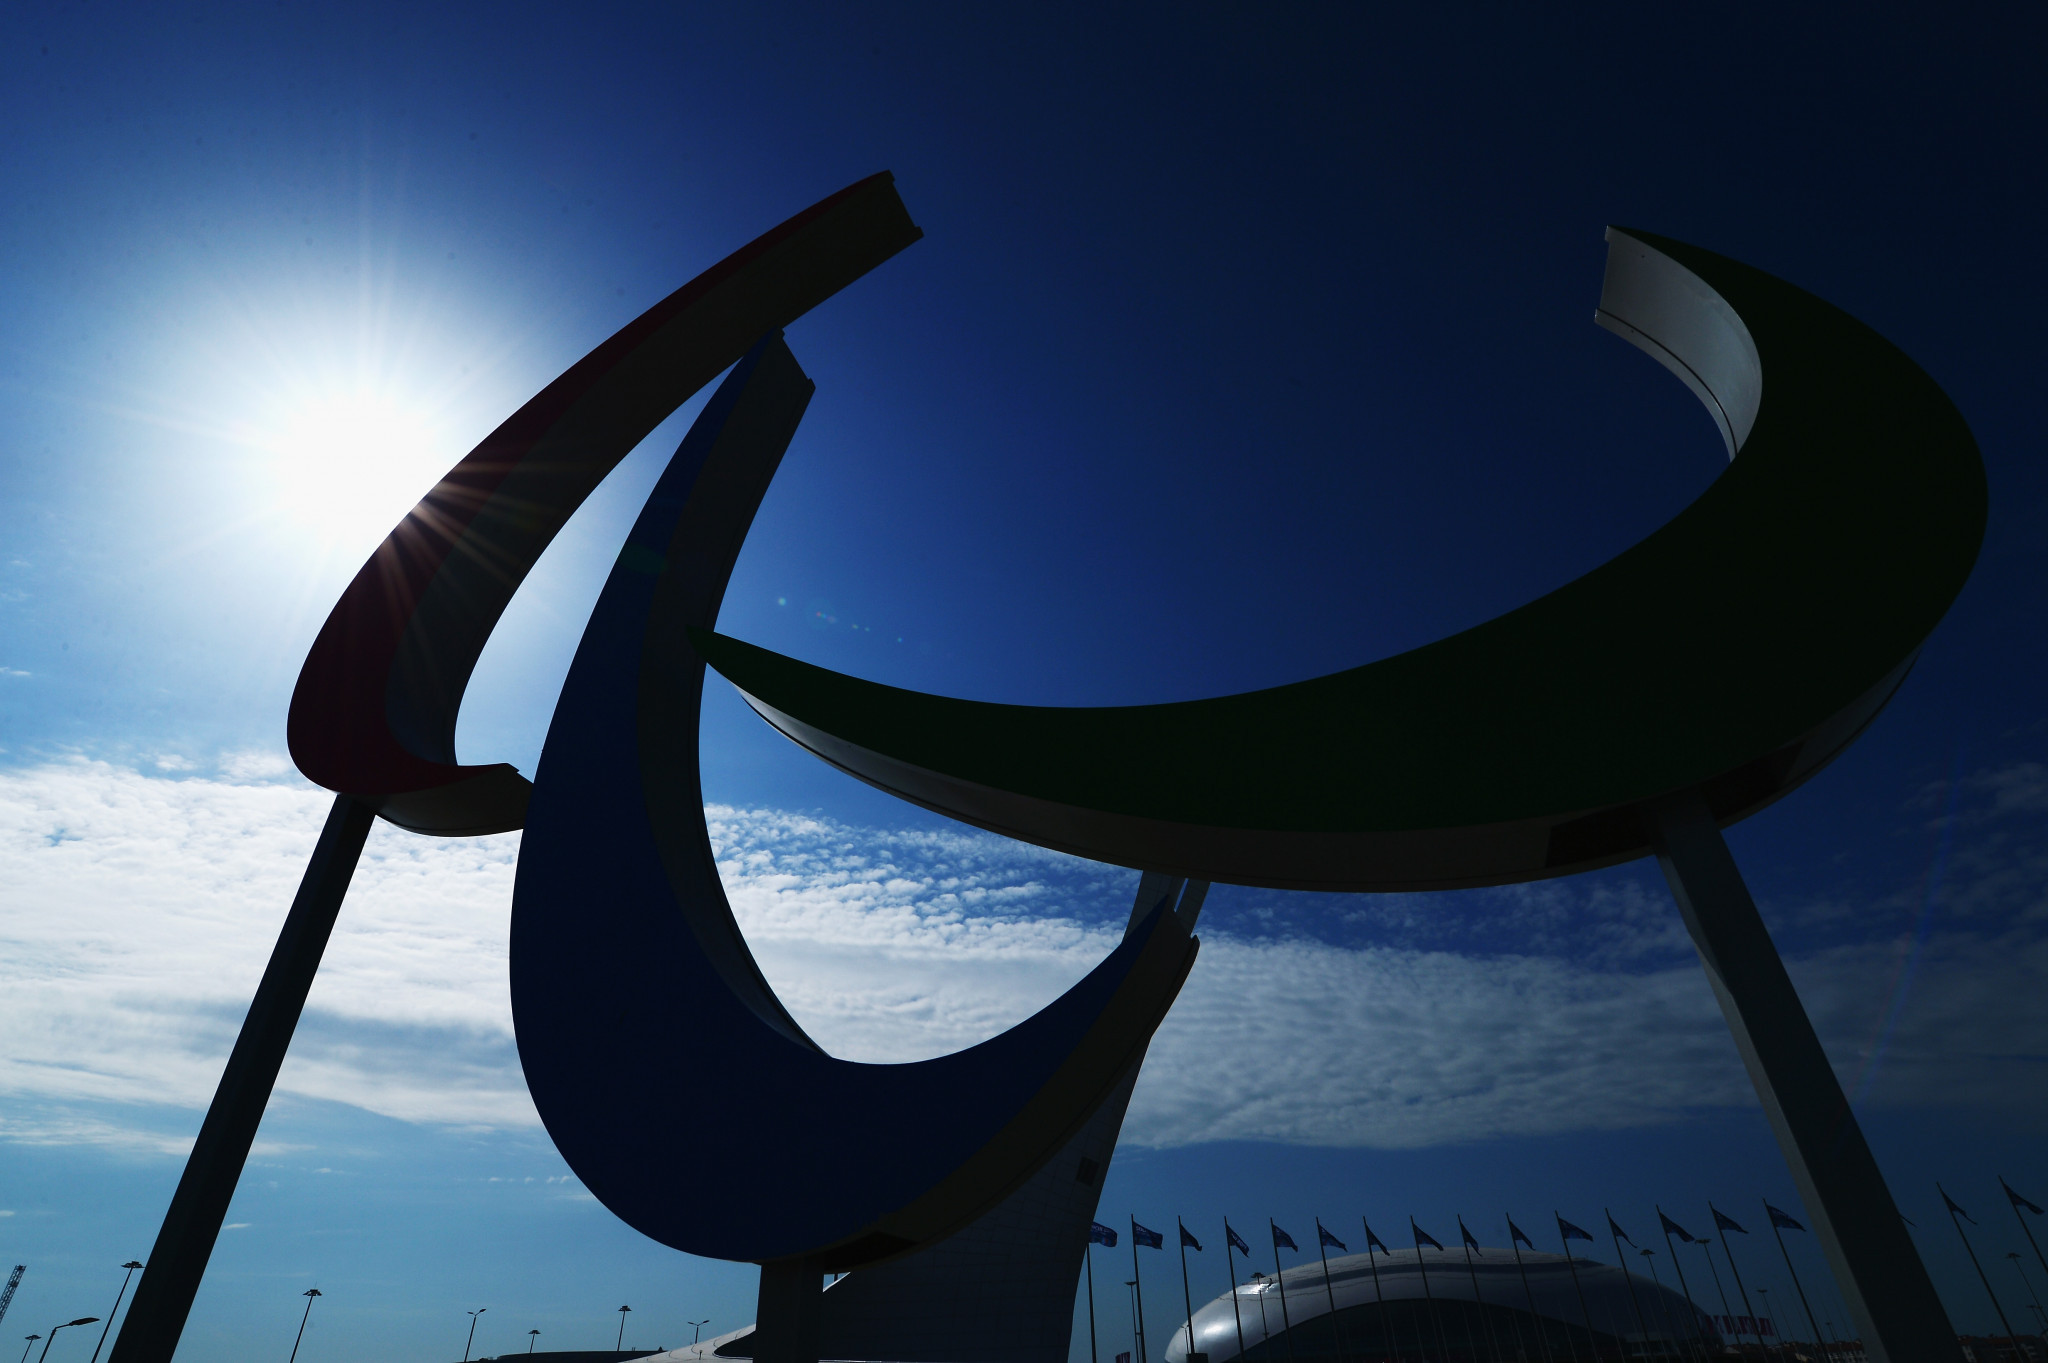 Tokyo 2020 on the agenda as IPC Governing Board to meet virtually over four days